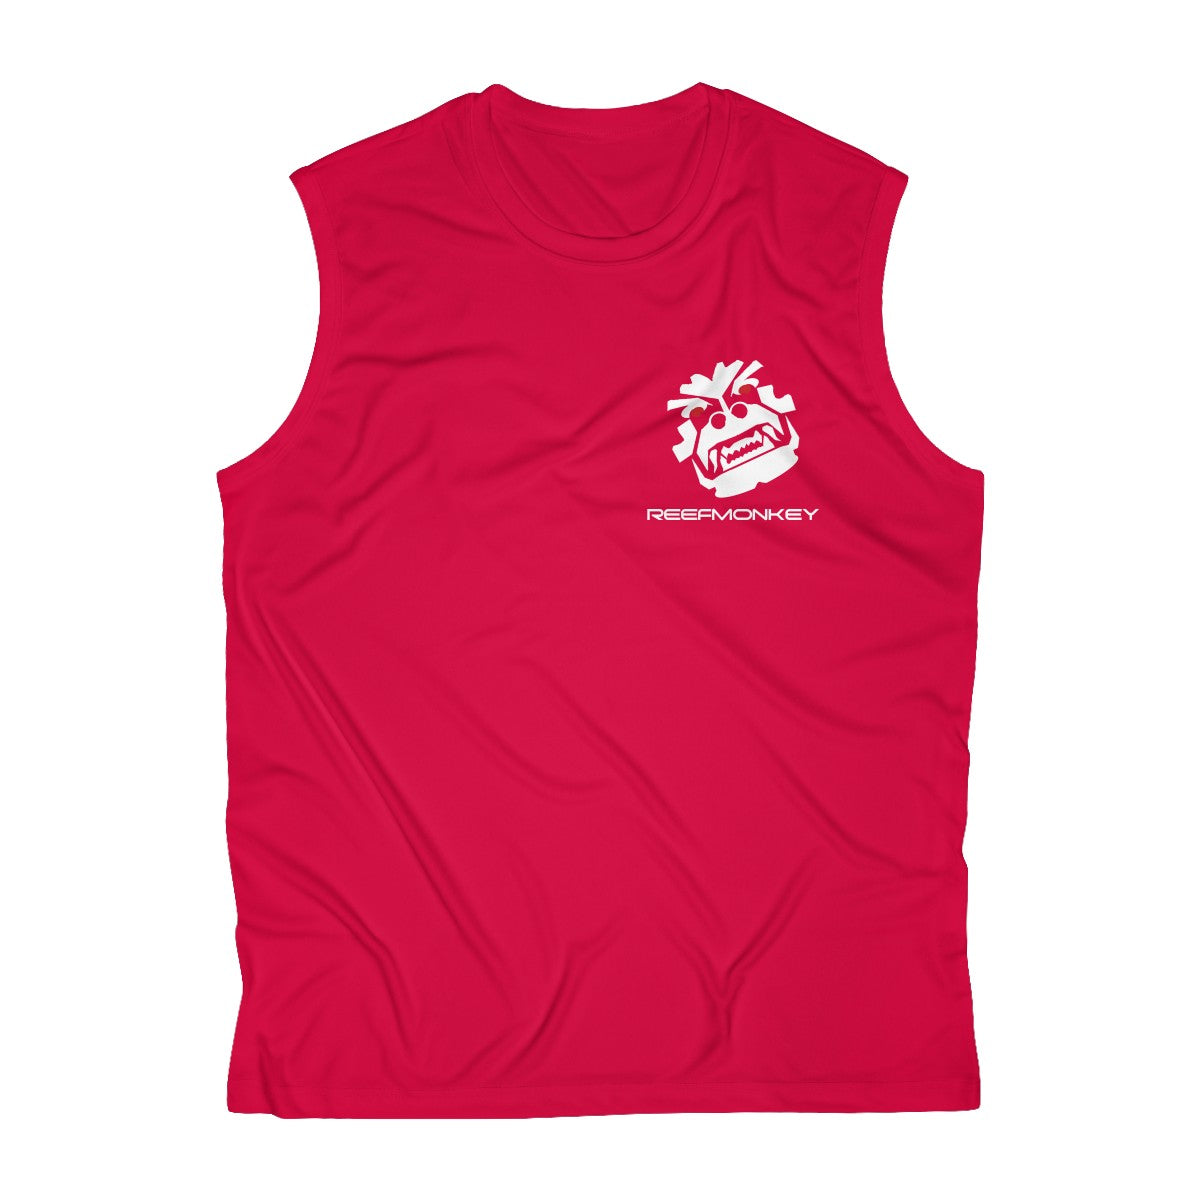 Angry Monkey - Men's Sleeveless Performance Tshirt by Reefmonkey